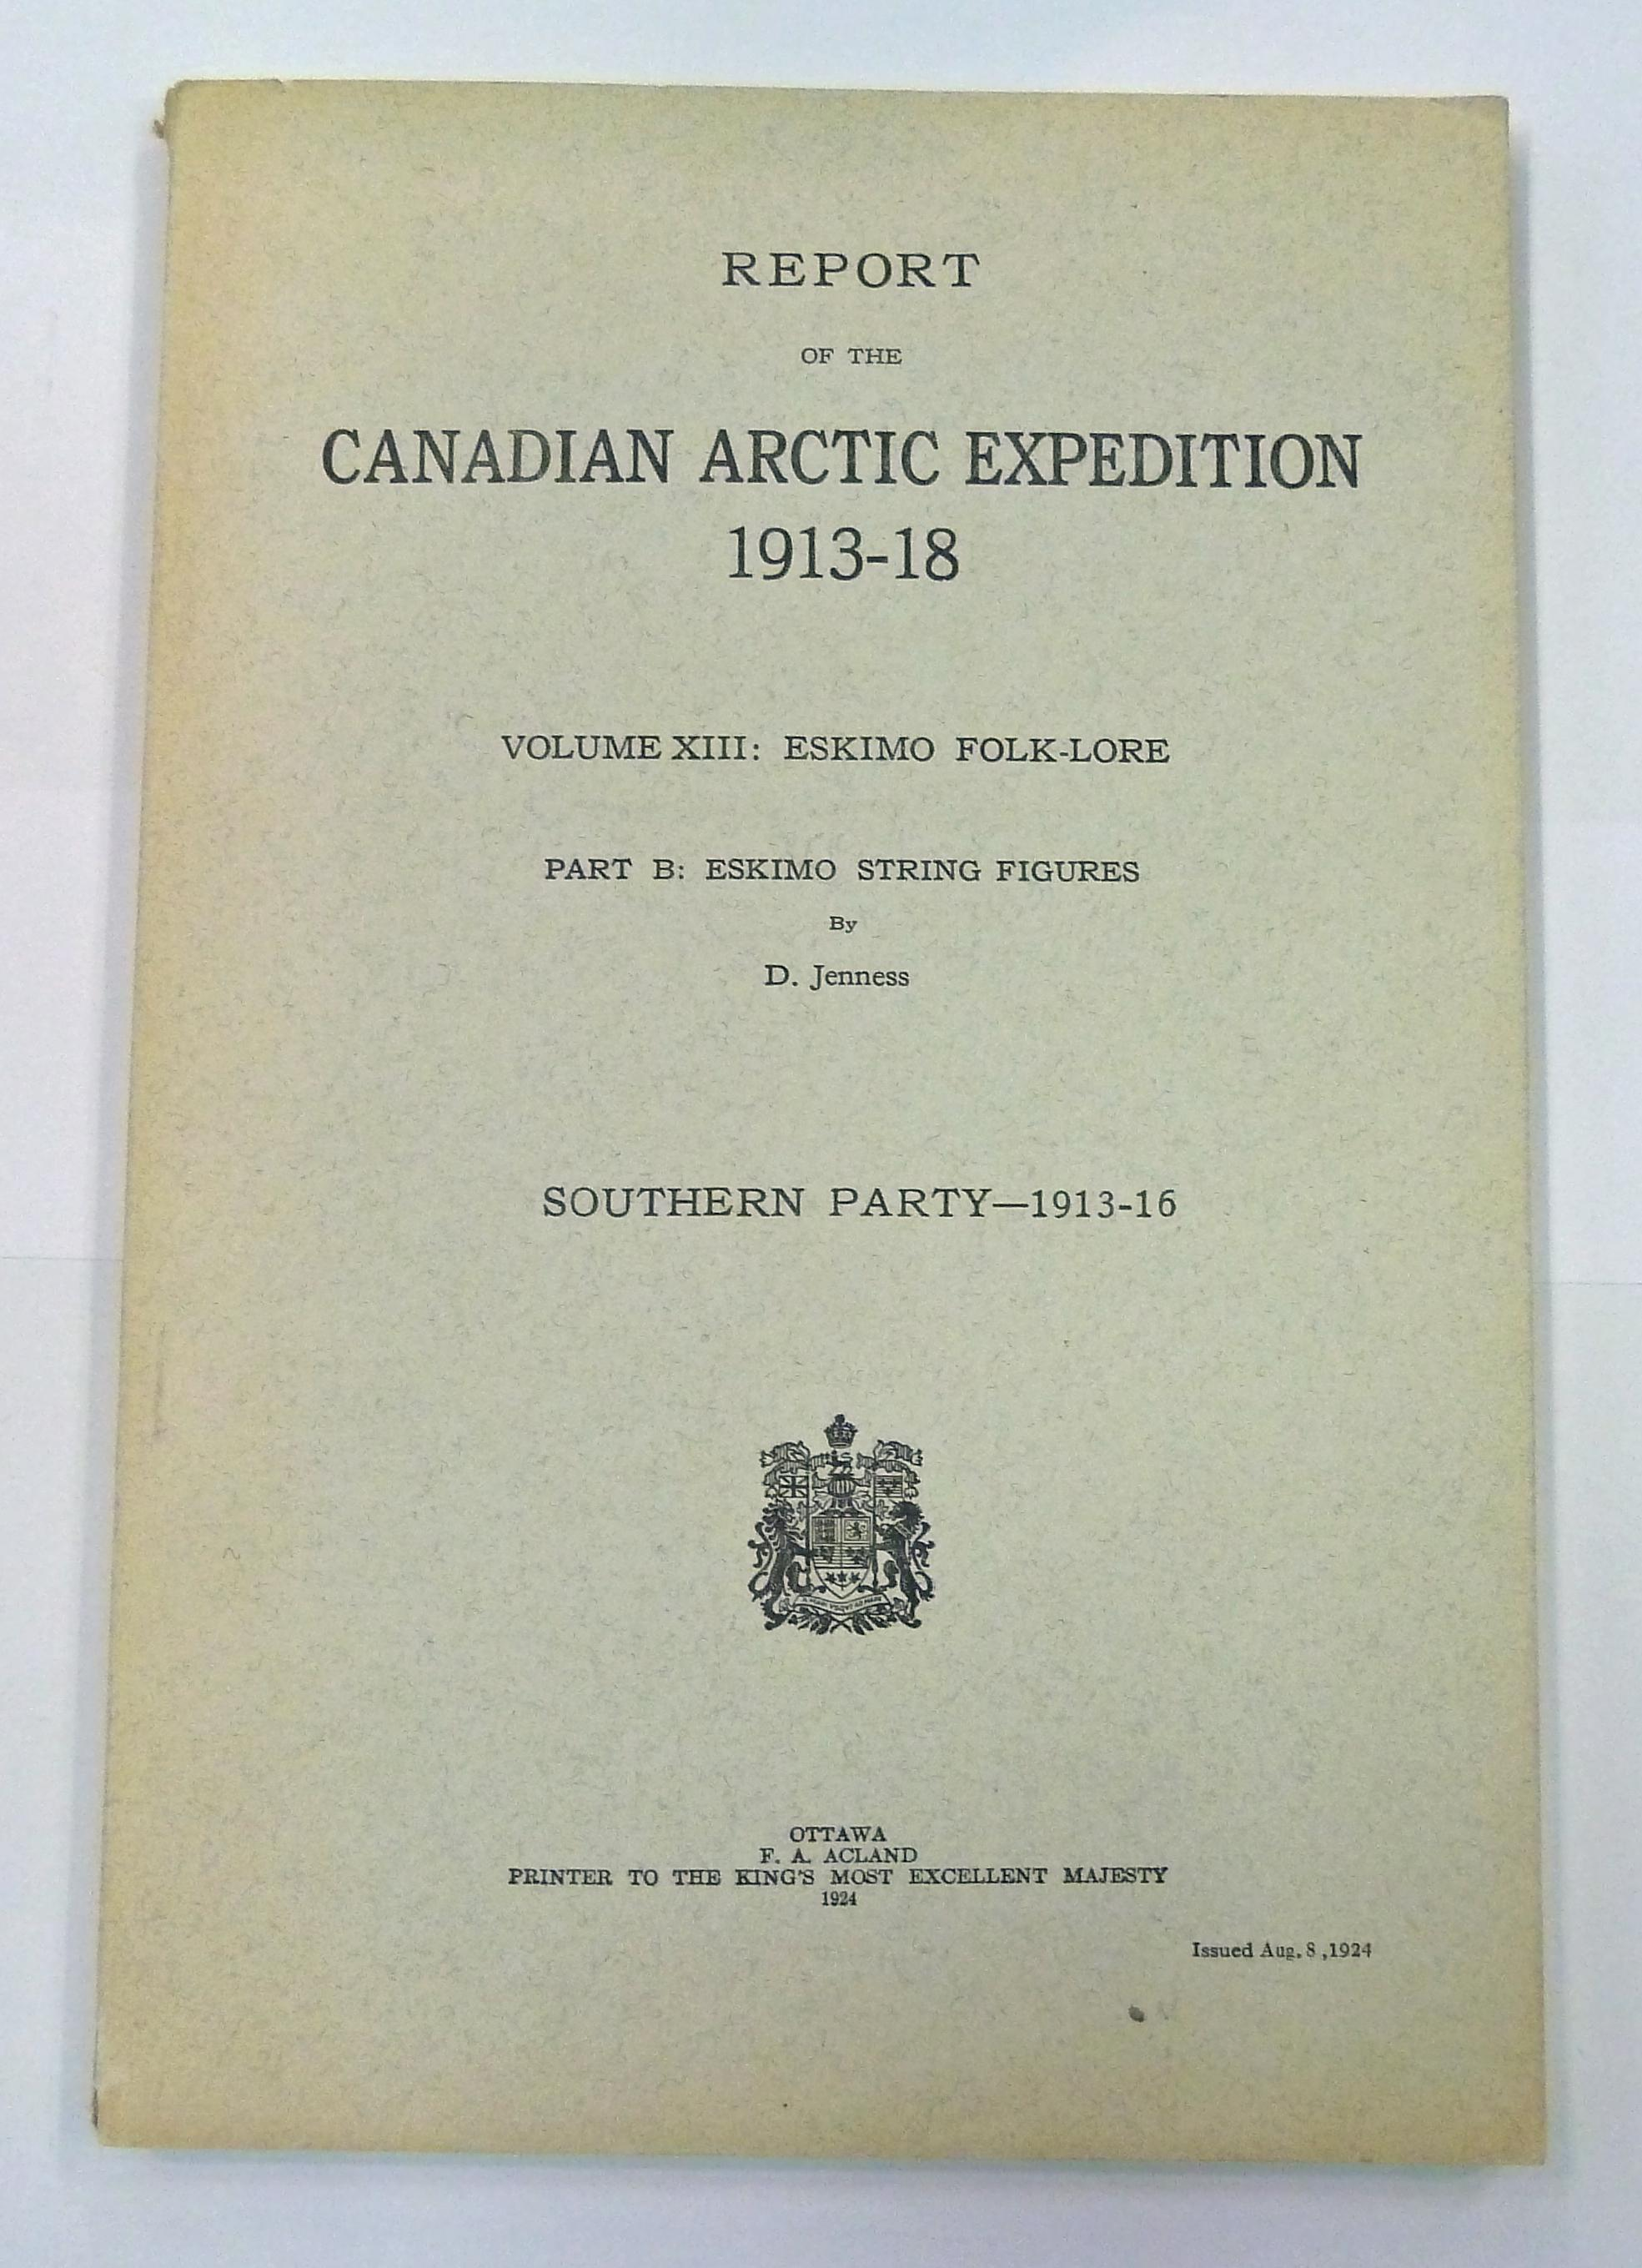 Report of the Canadian Arctic Expedition 1913-18